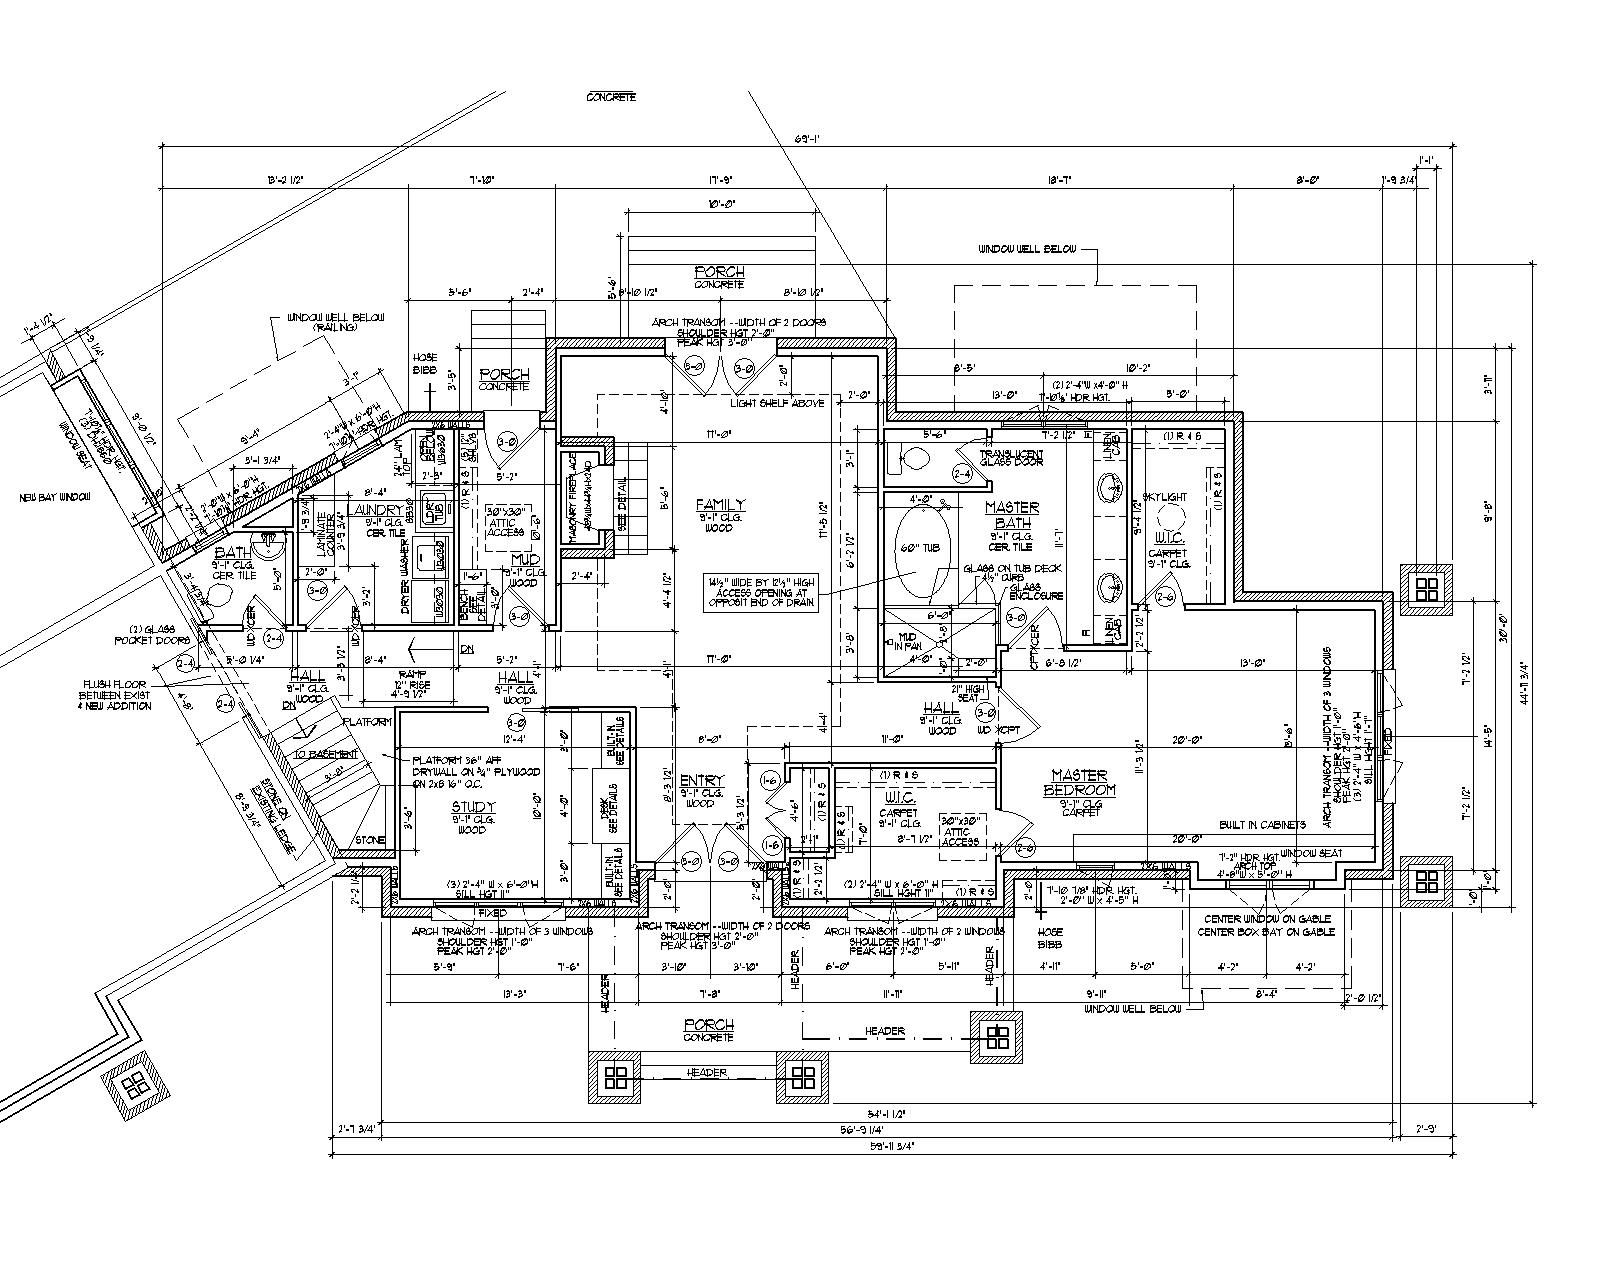 2d autocad house plans residential building drawings cad for Draw your house plans